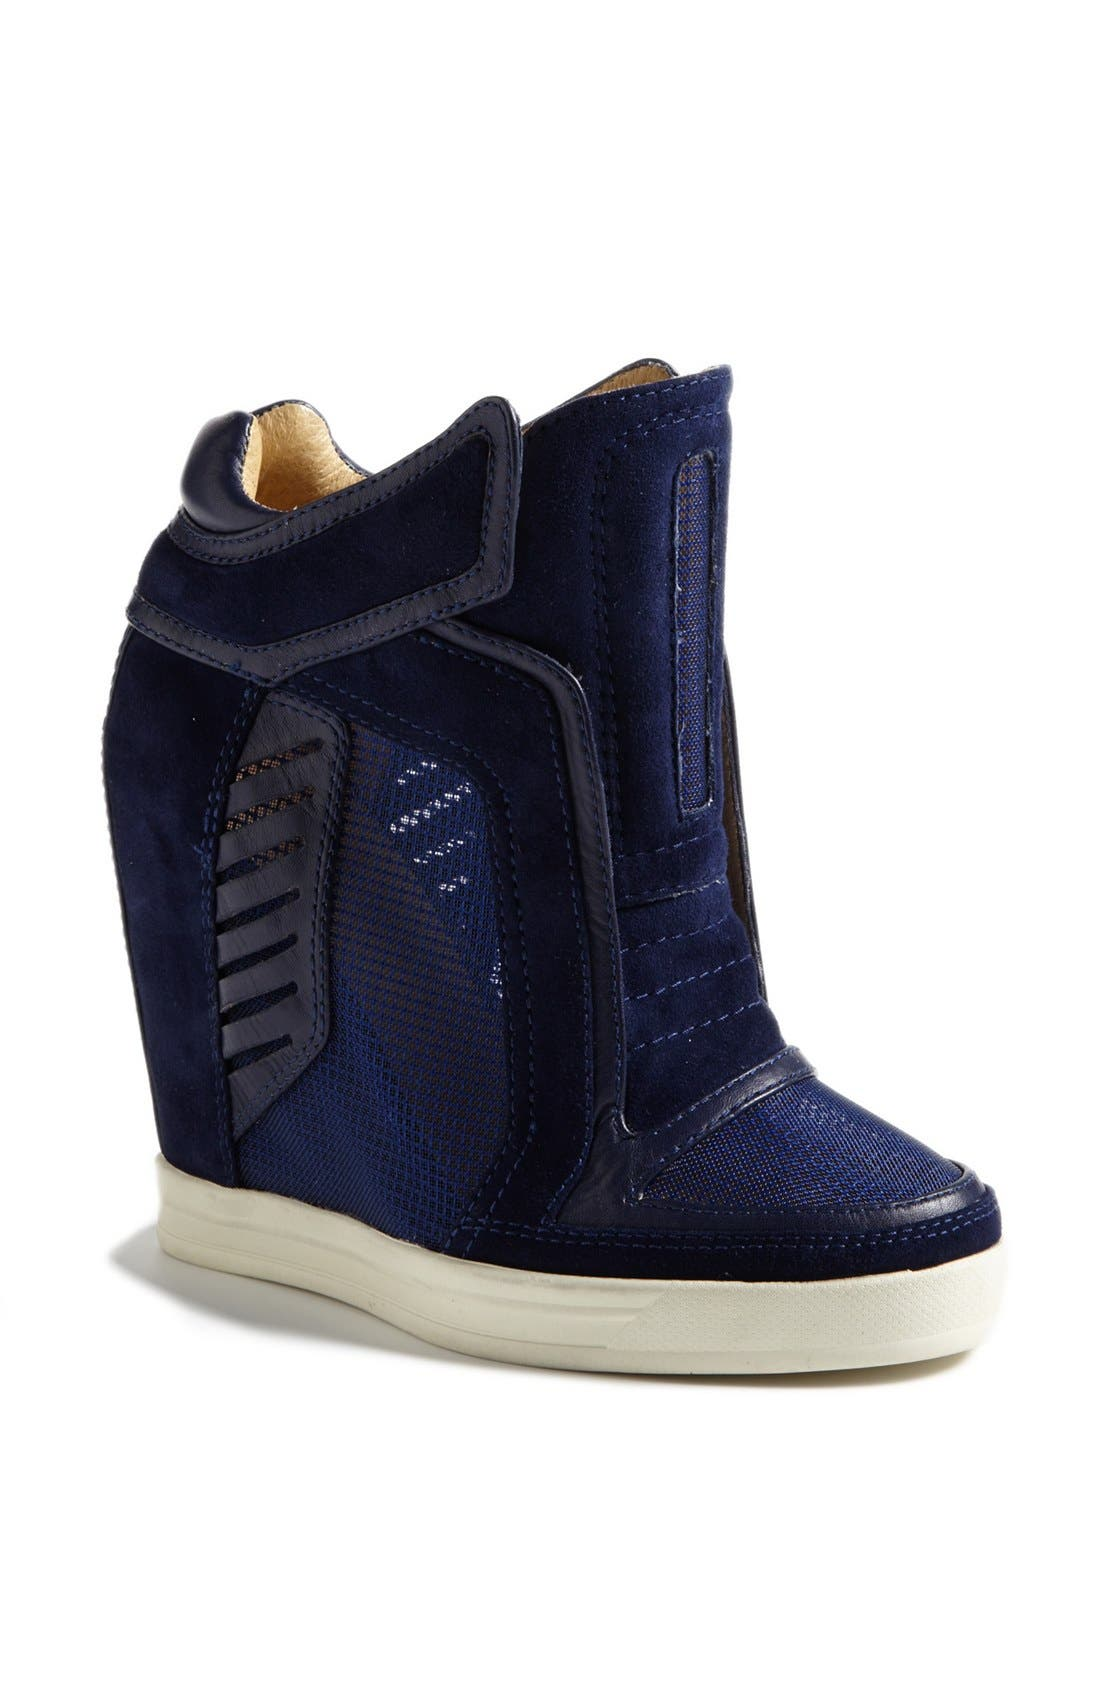 Alternate Image 1 Selected - L.A.M.B. 'Freeda' High Top Sneaker (Online Only)